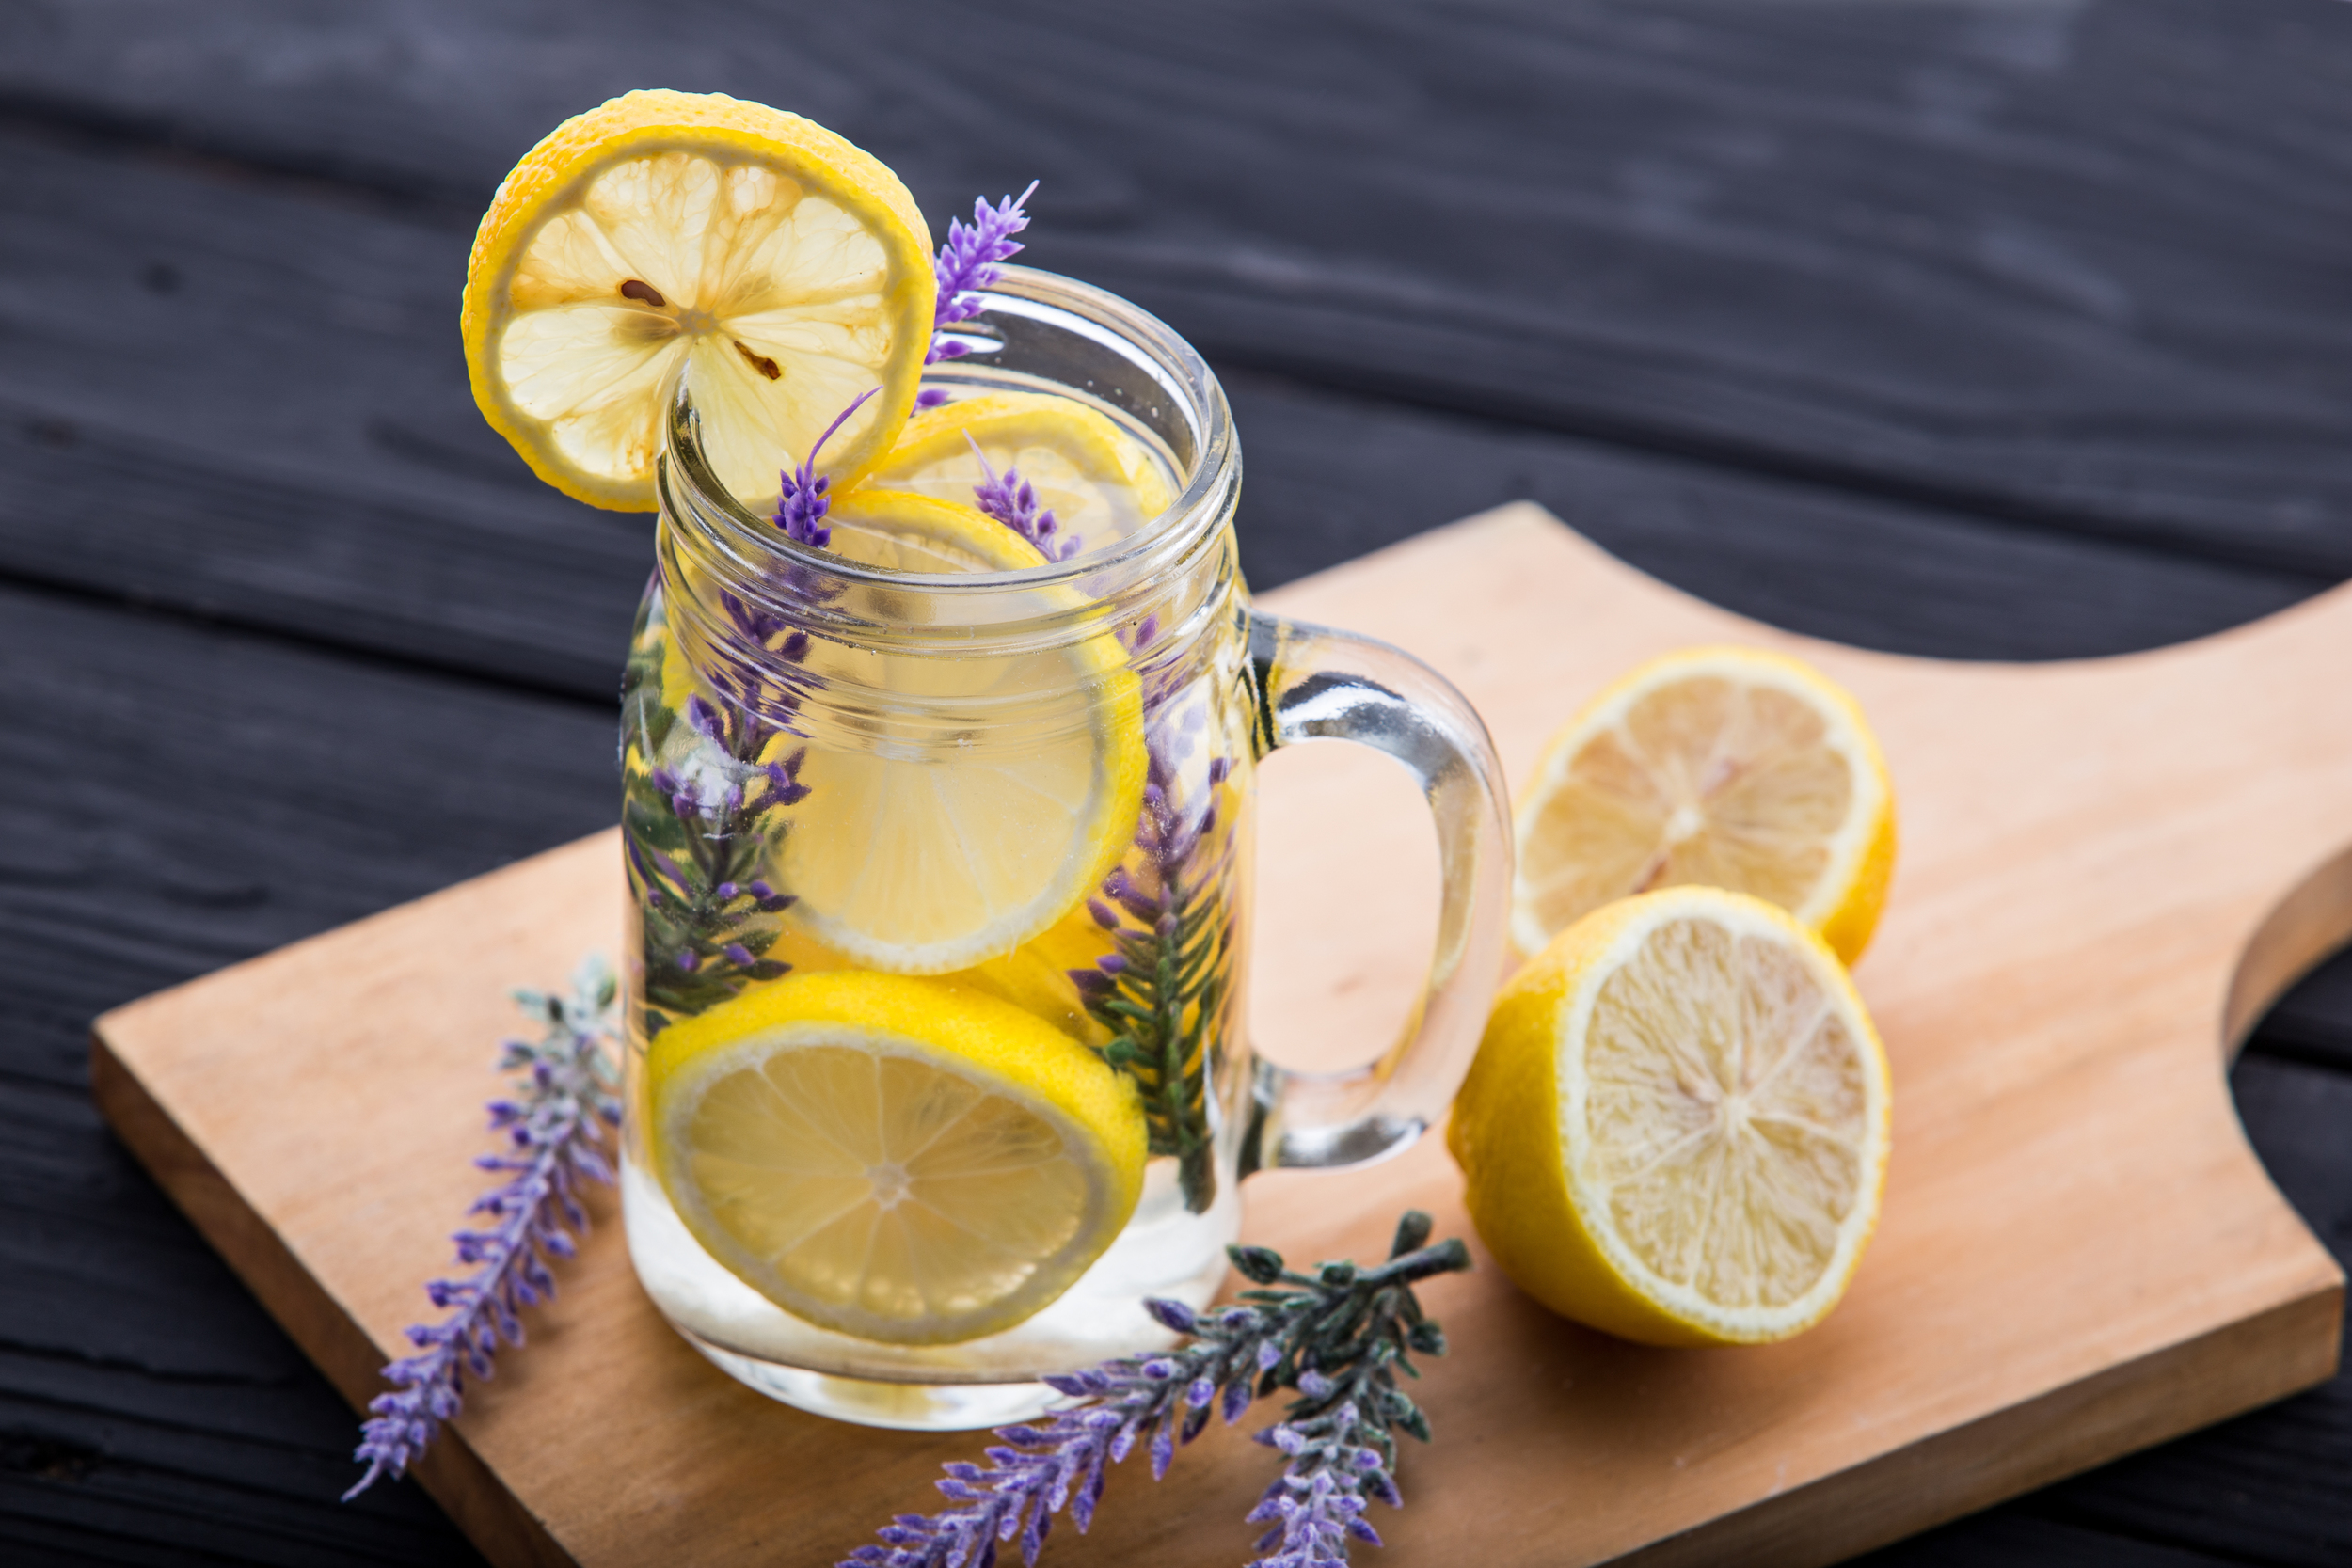 Lavender and lemon infused water!